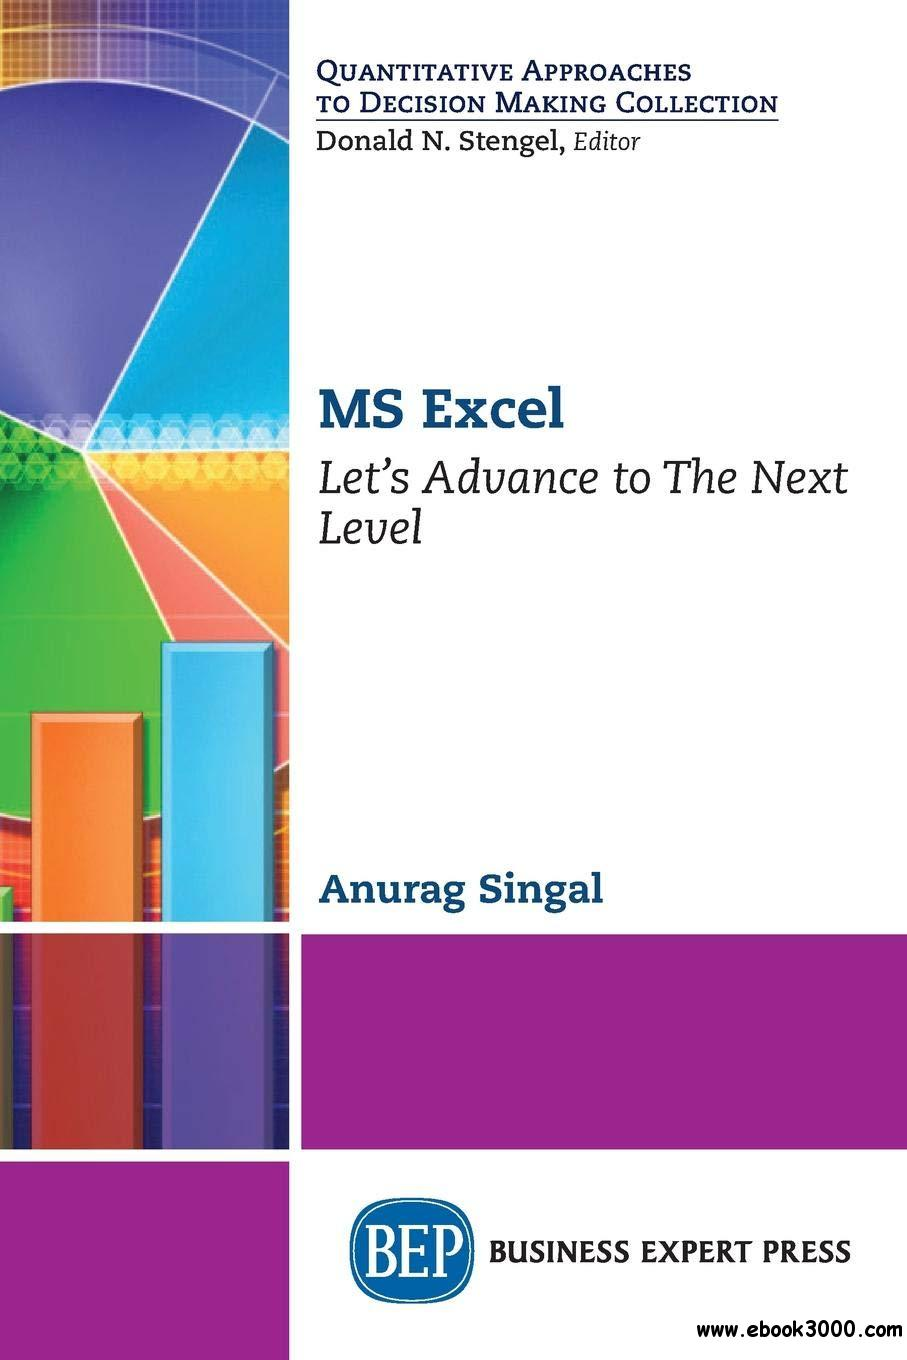 MS Excel: Let's Advance to The Next Level